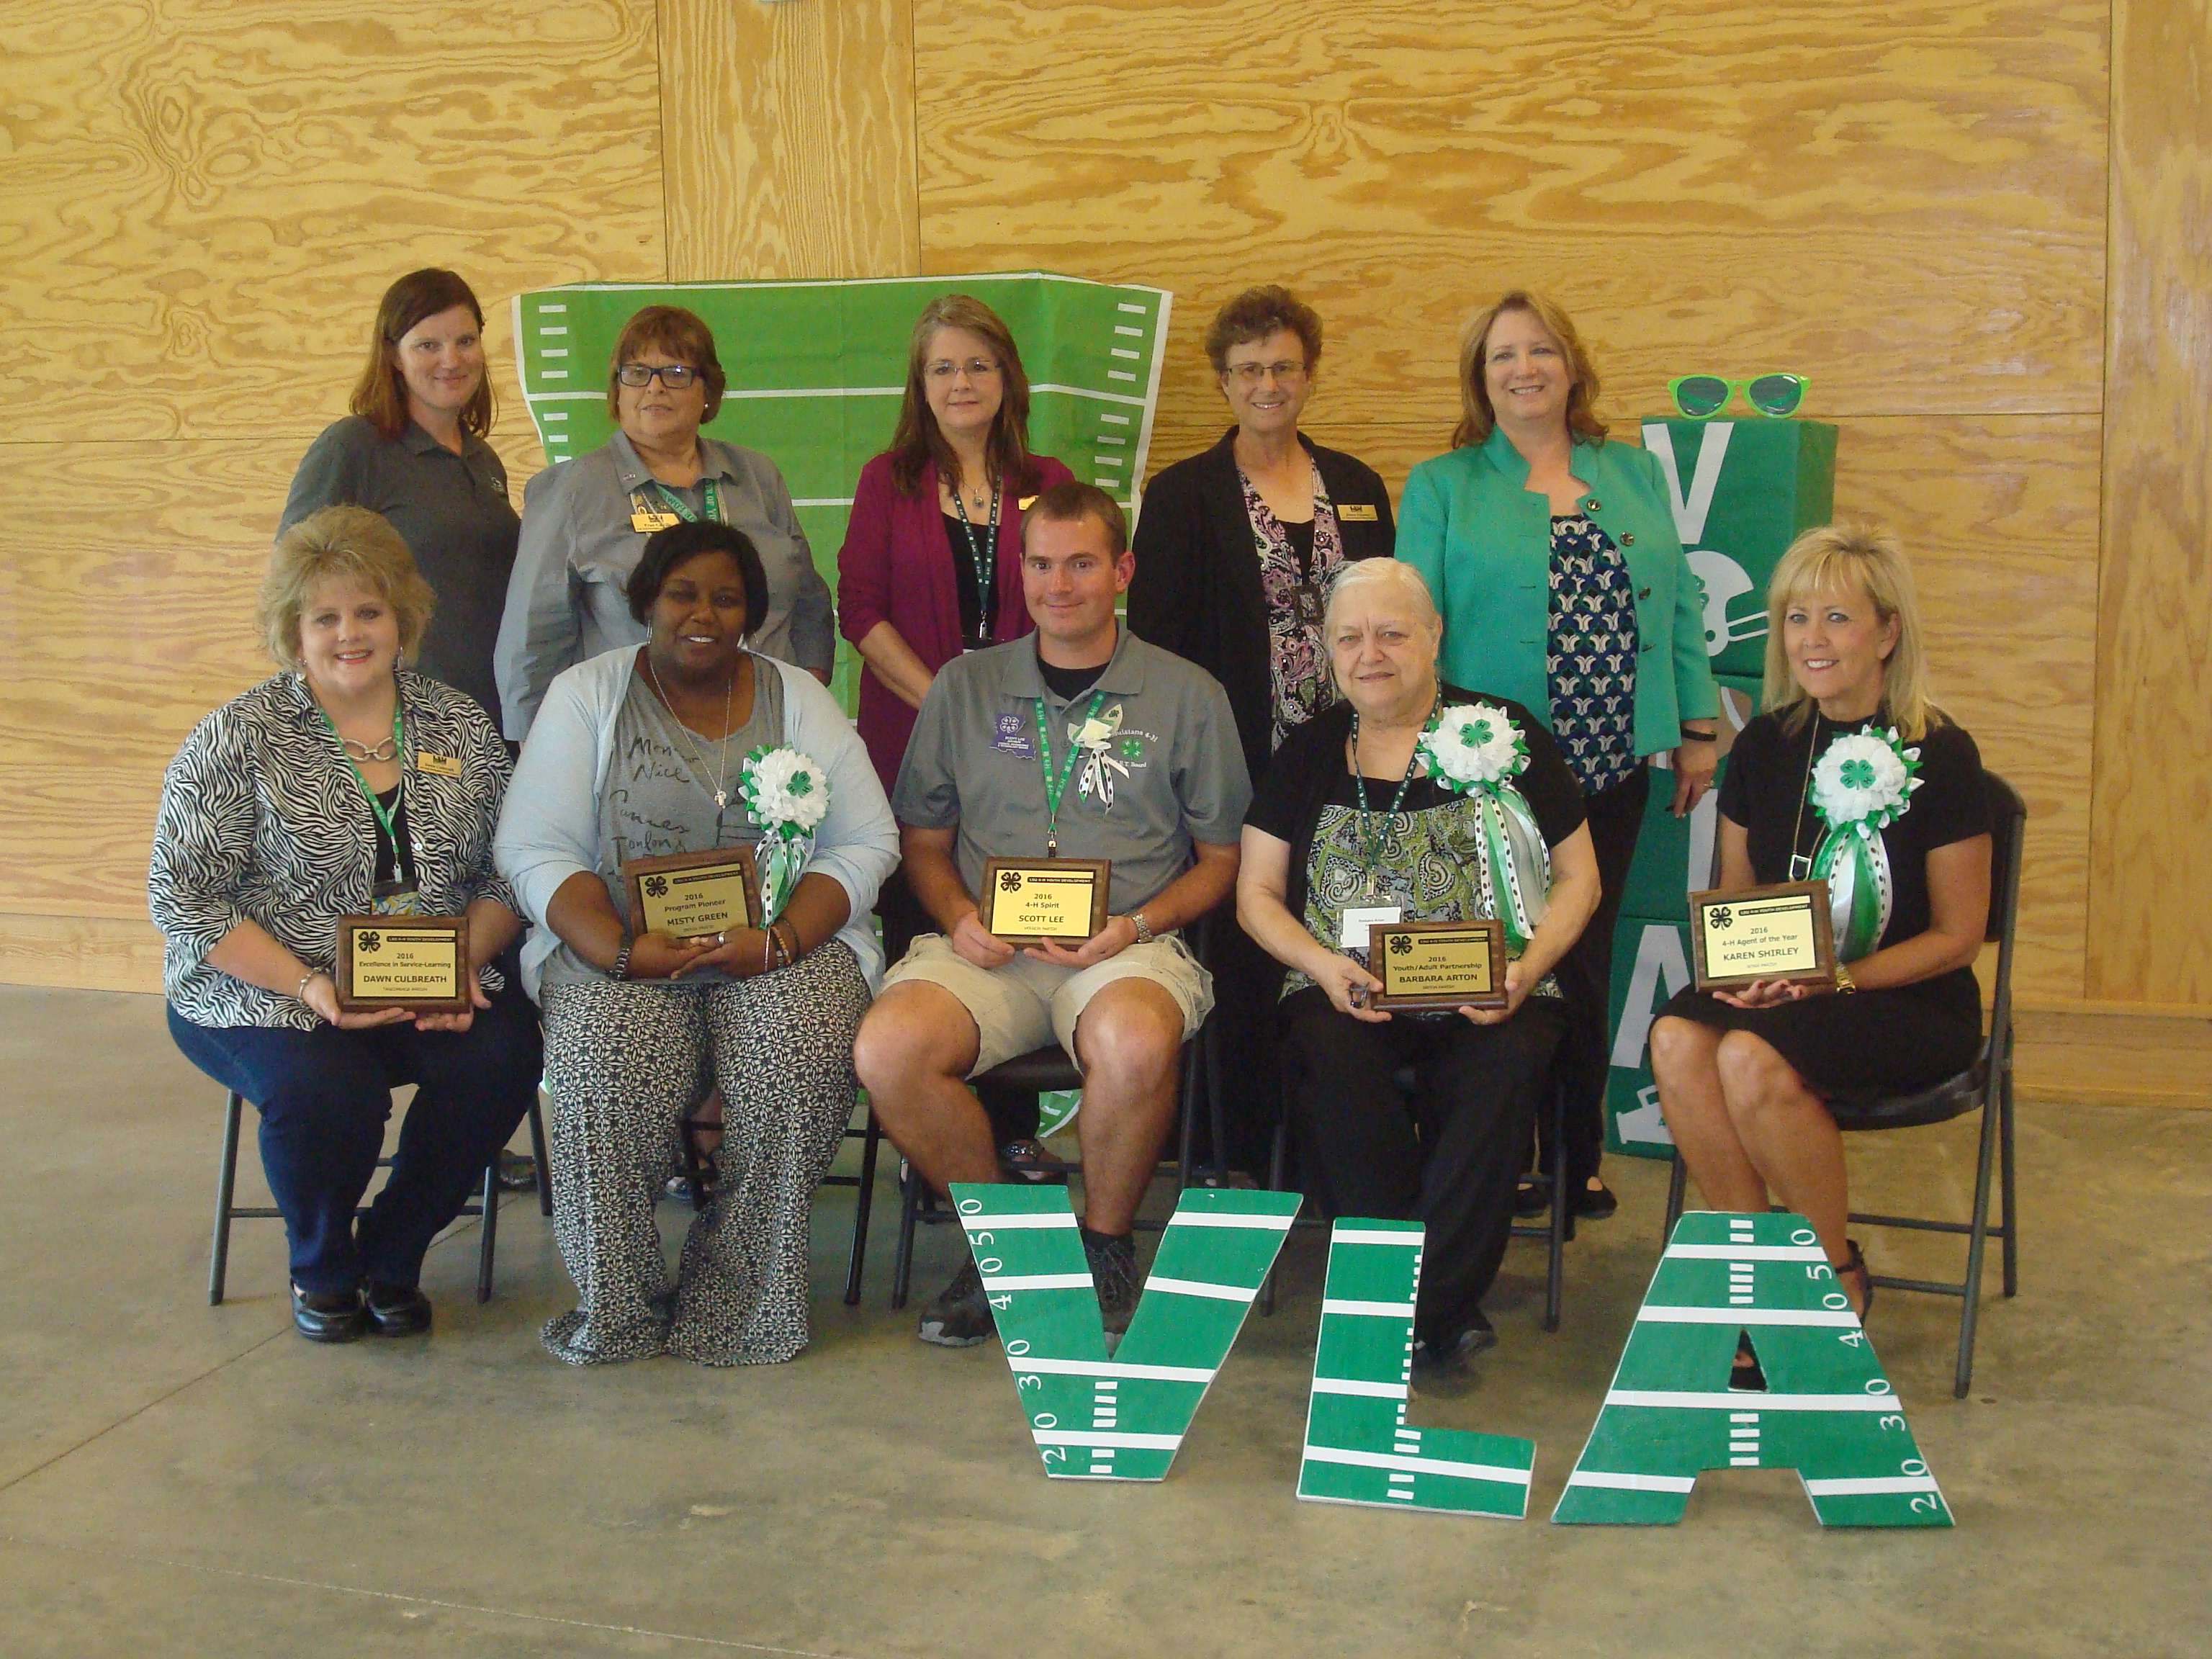 VLA Award Winners